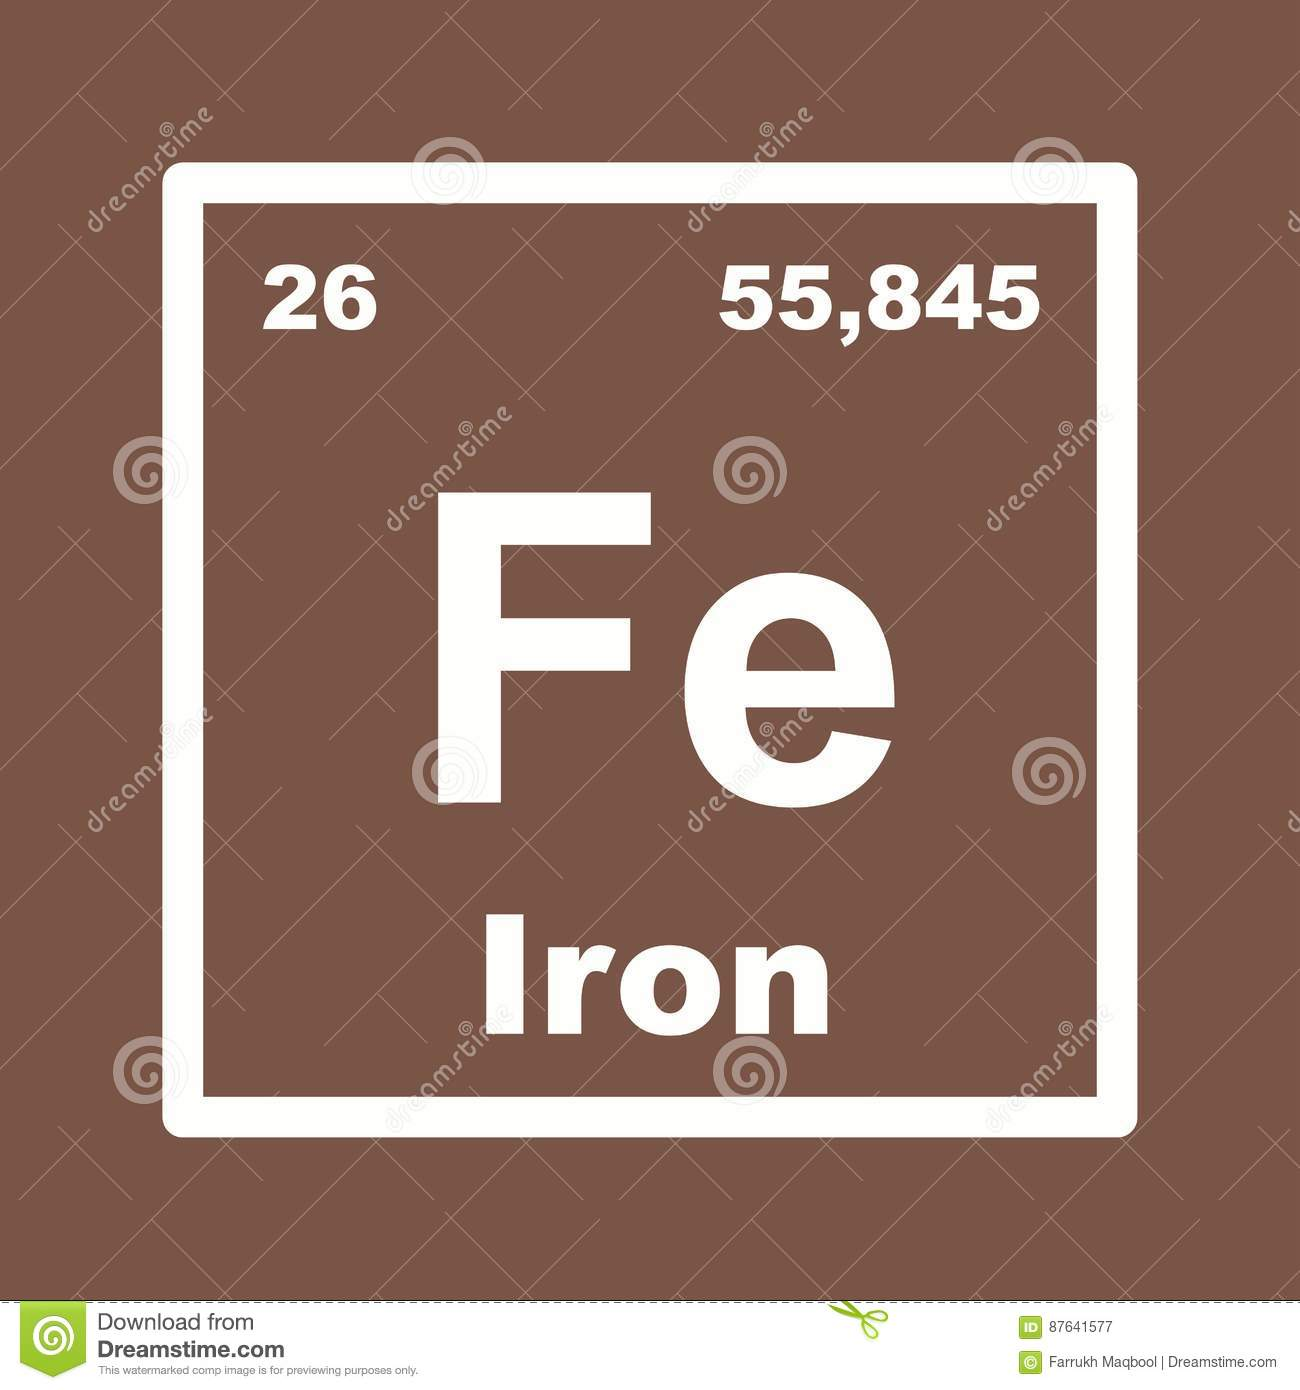 Iron stock vector  Illustration of chemical, science - 87641577